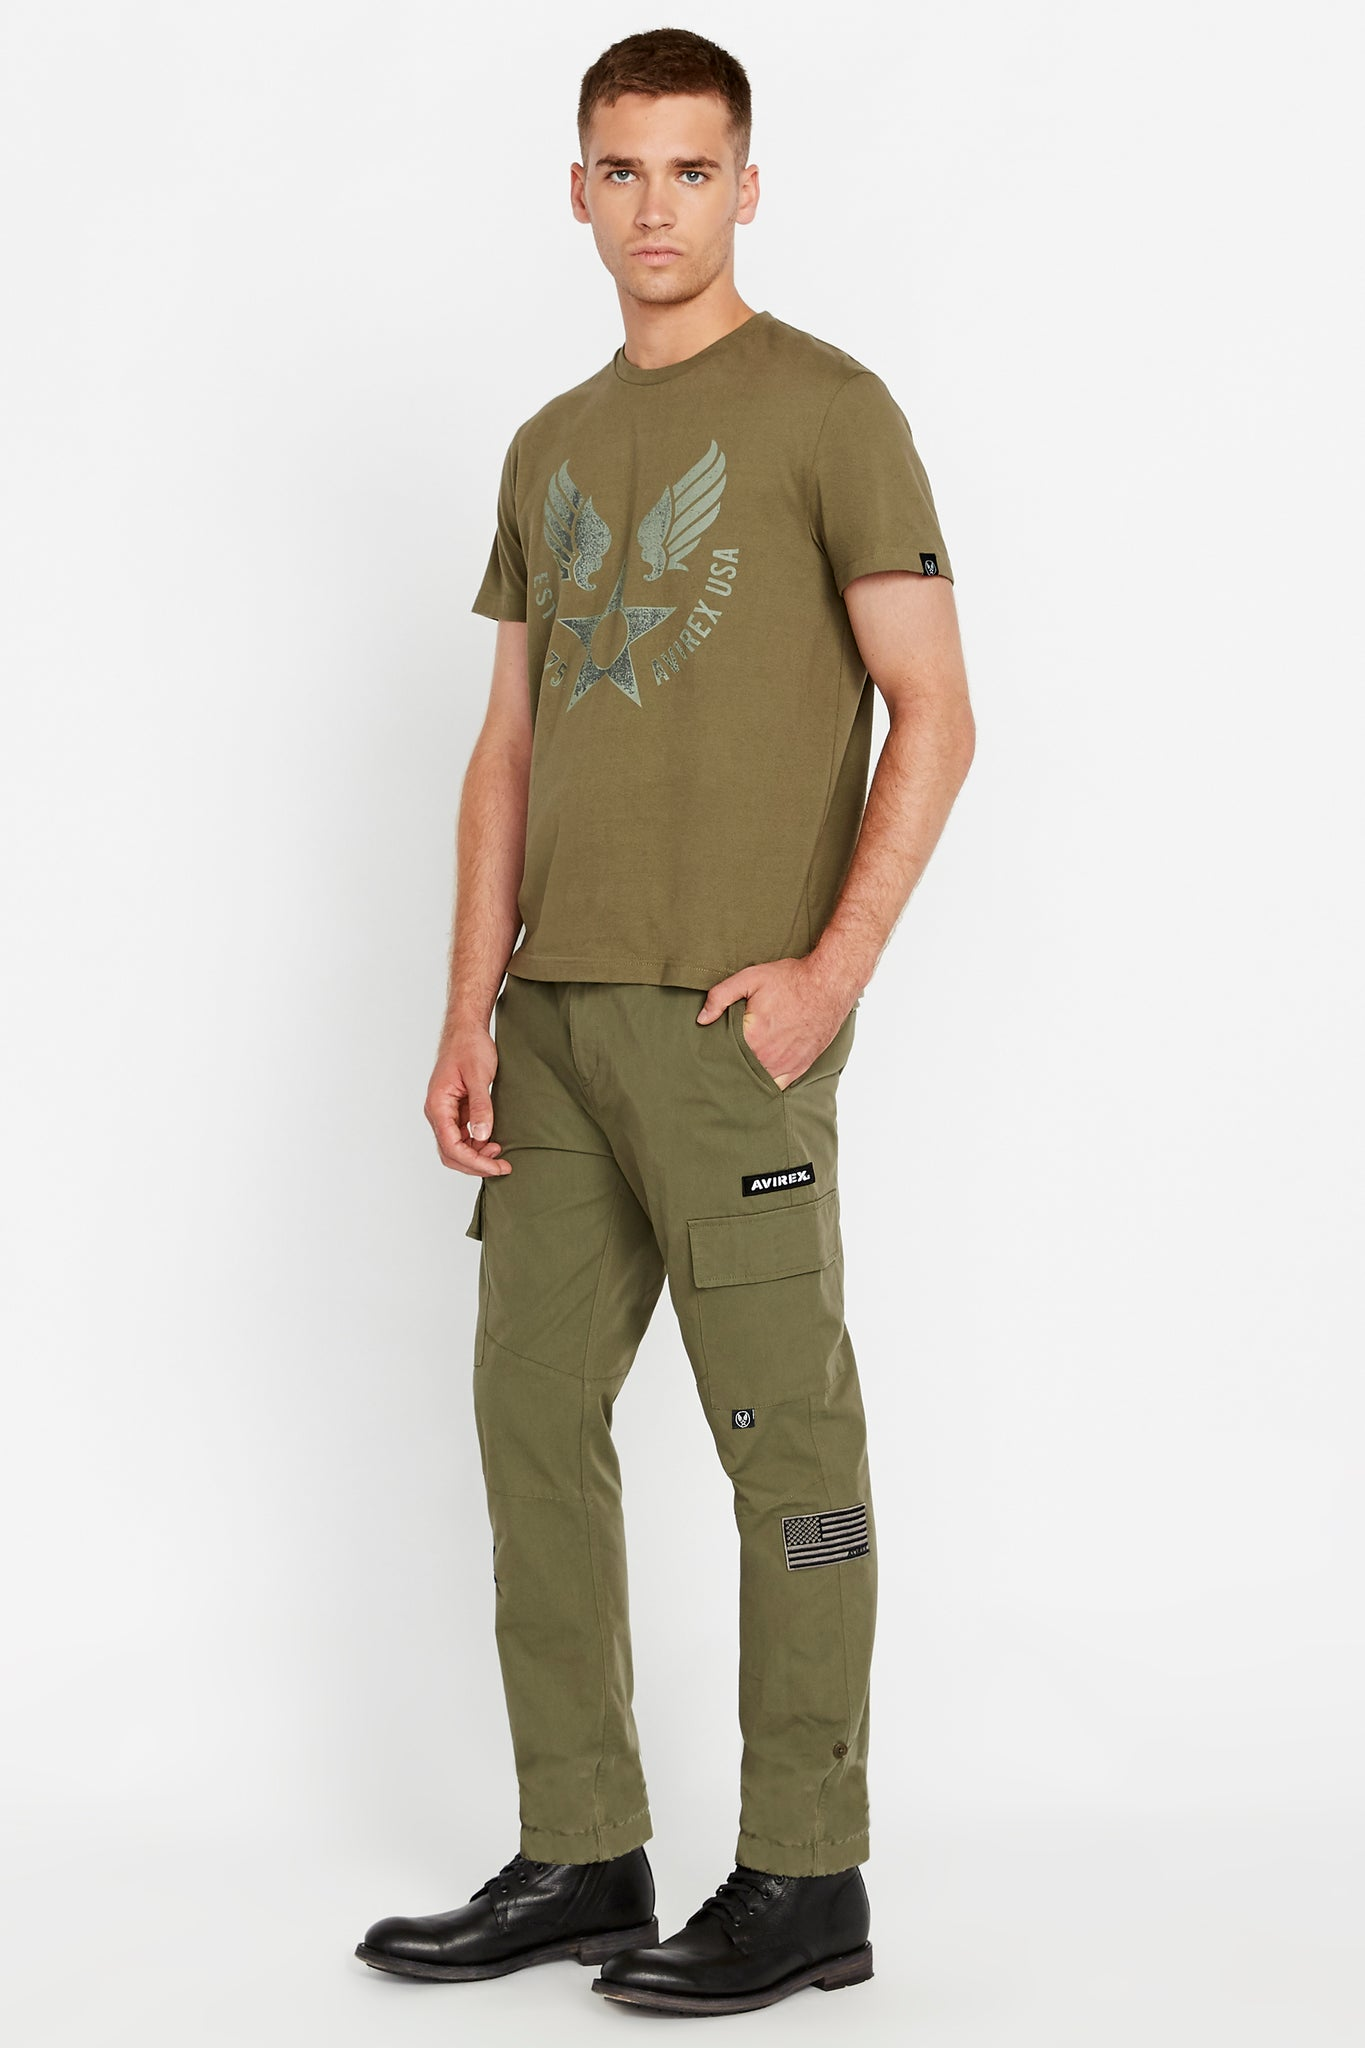 Side view of men wearing an olive short sleeve crew T-shirt with front Avirex airforce wing-star print and olive pants